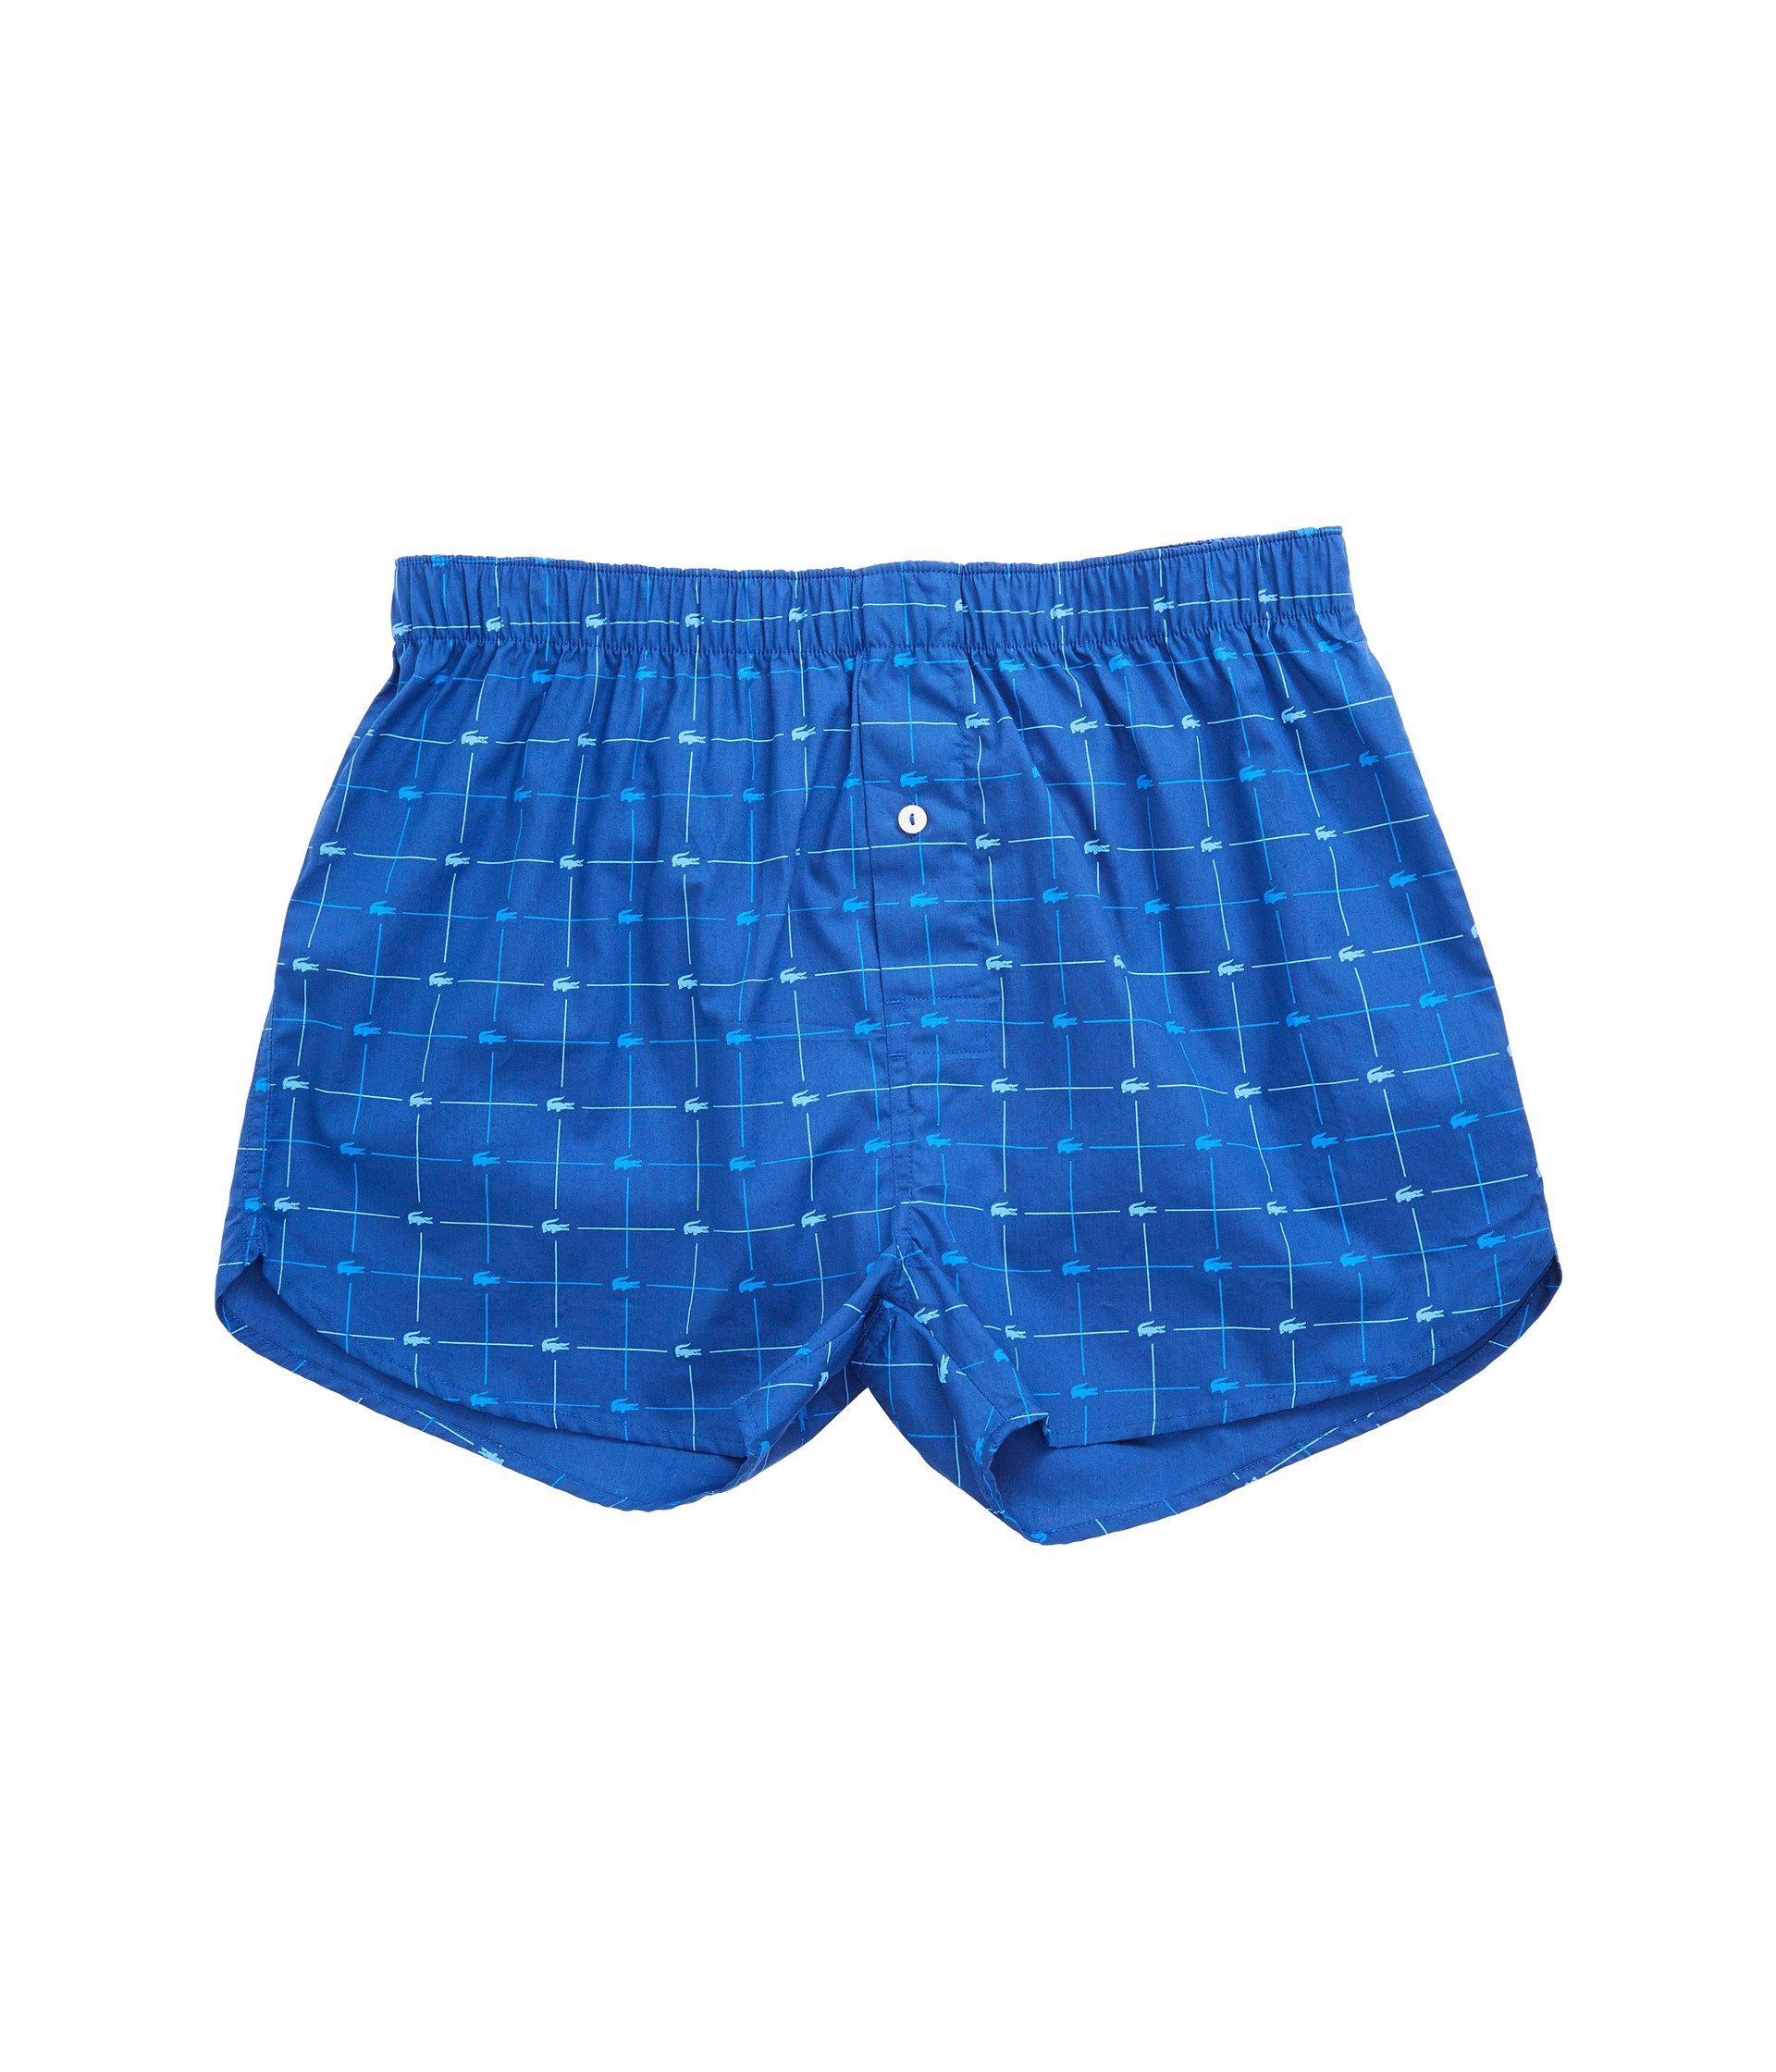 91f0c9819 Lyst - Lacoste Authentics 2-pack Signature Print Woven Boxers in ...